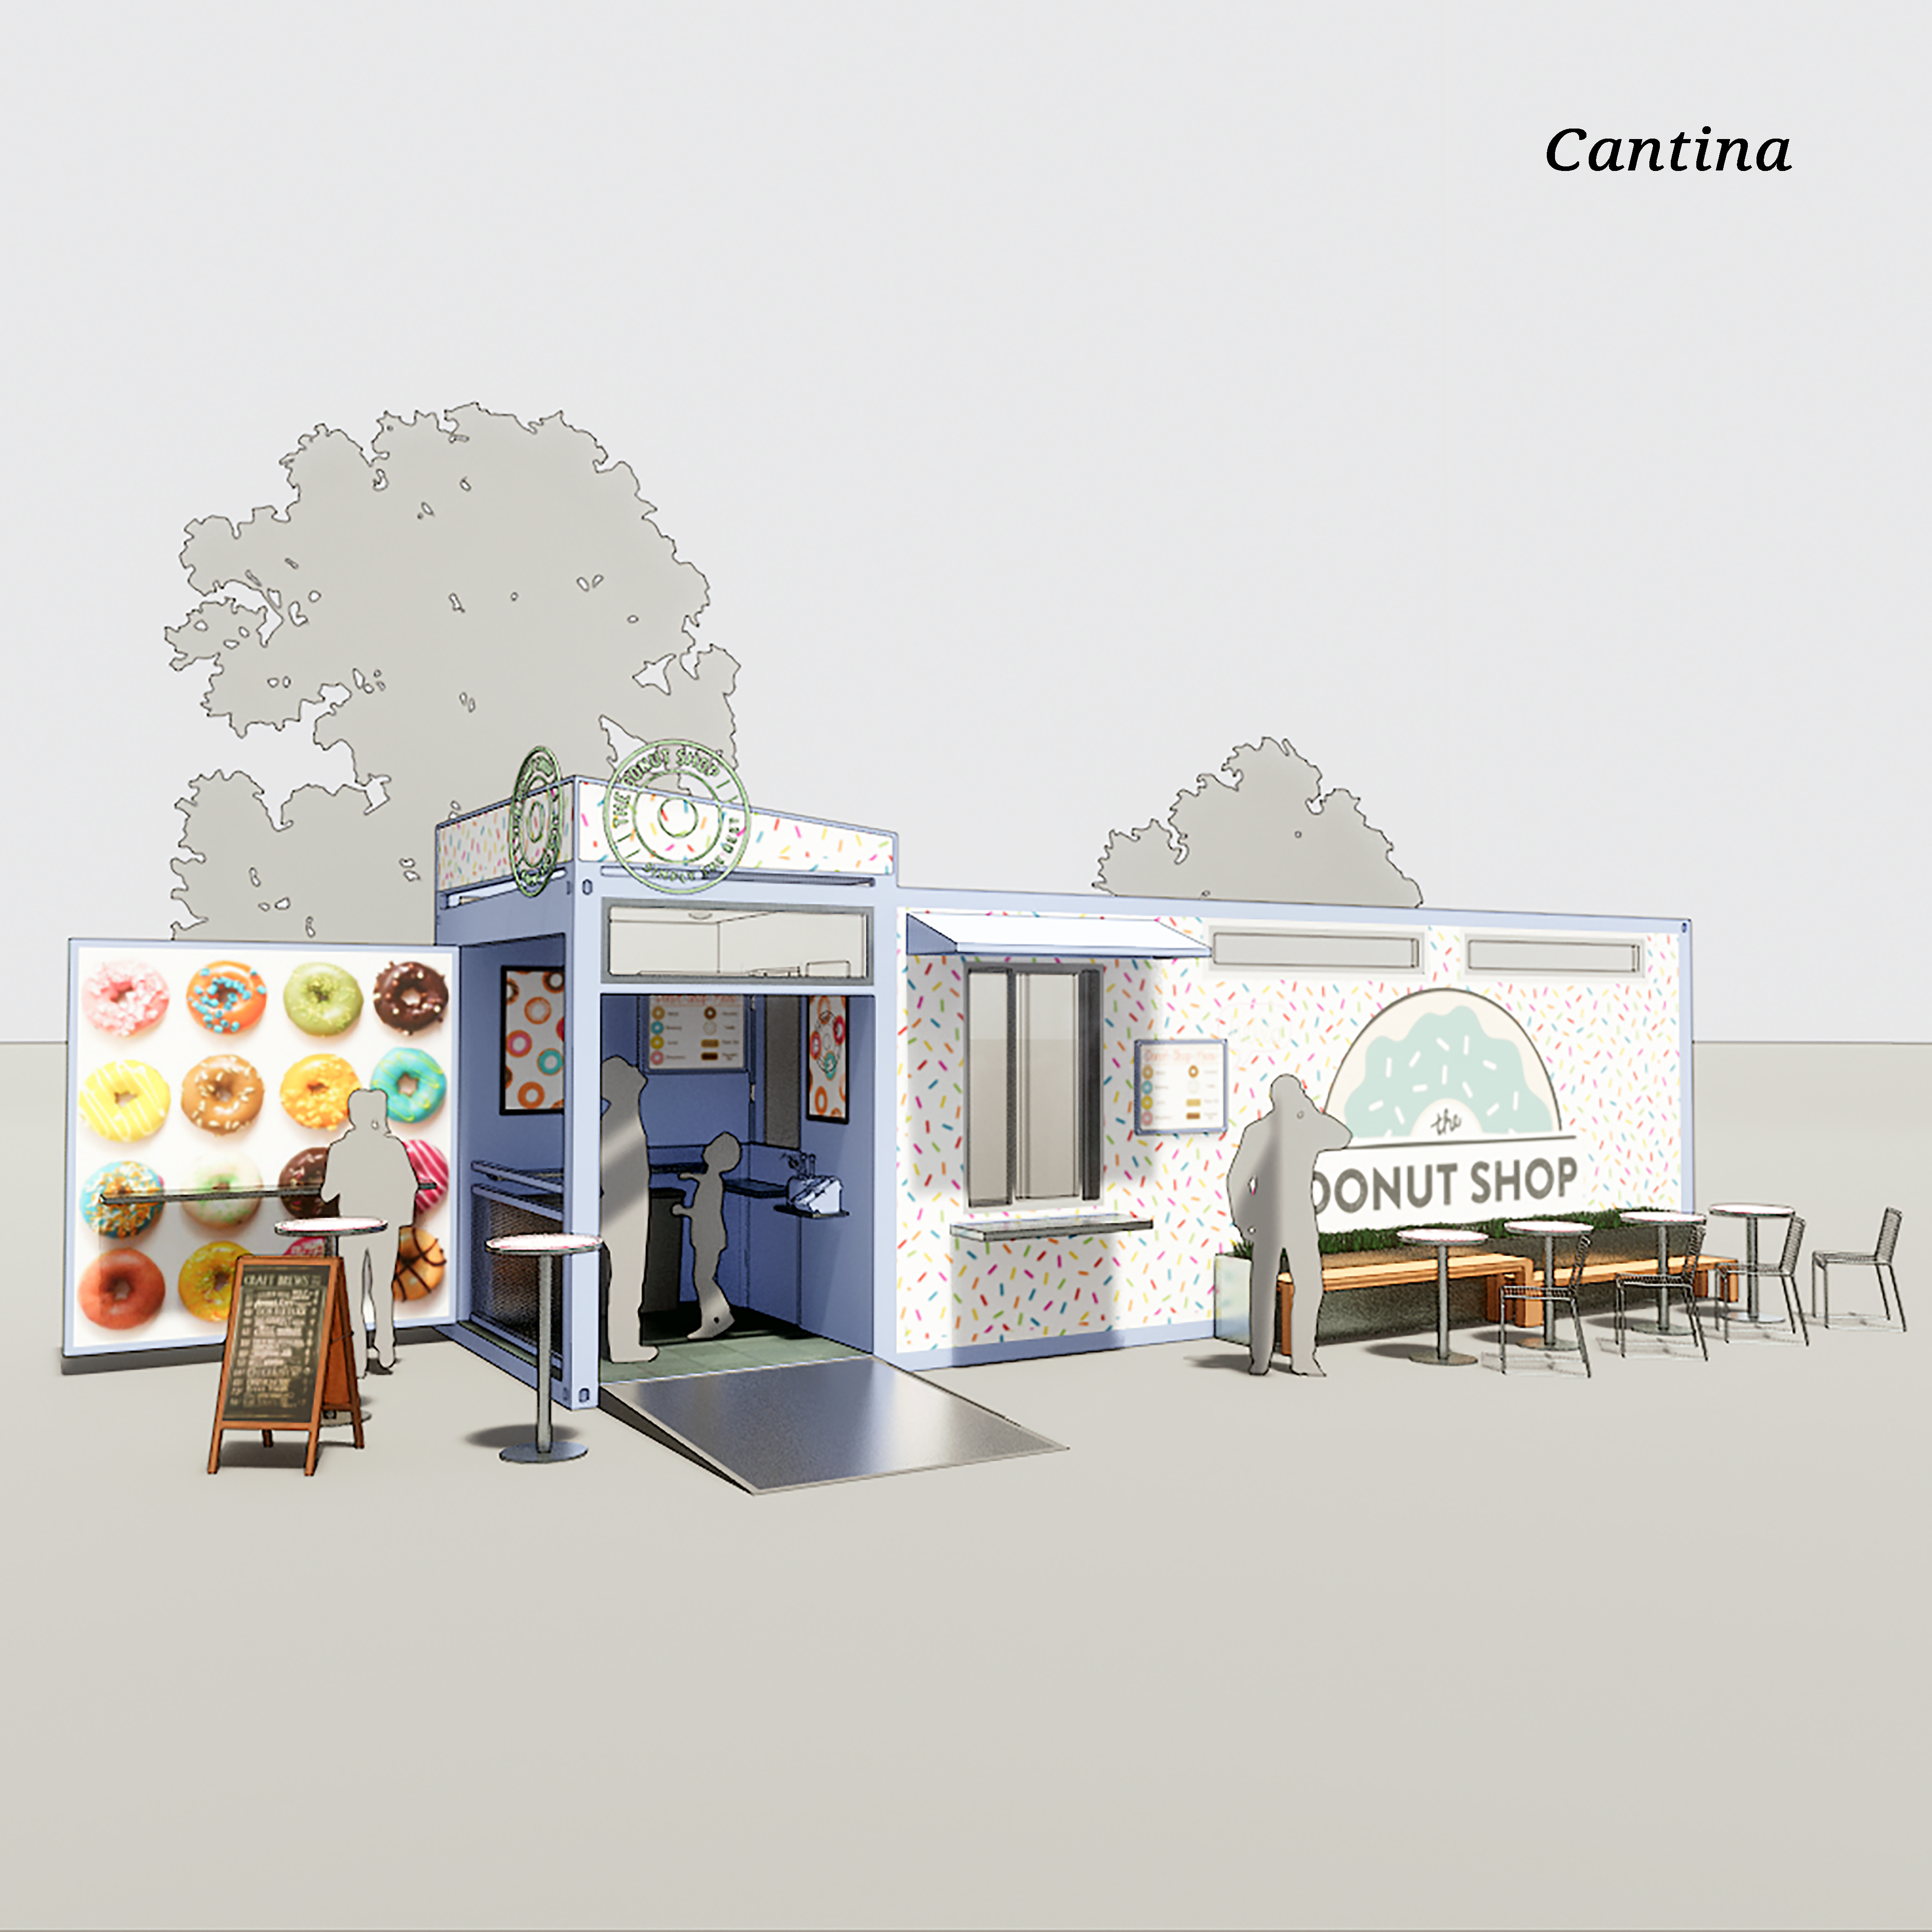 New-Cantina-r0.png